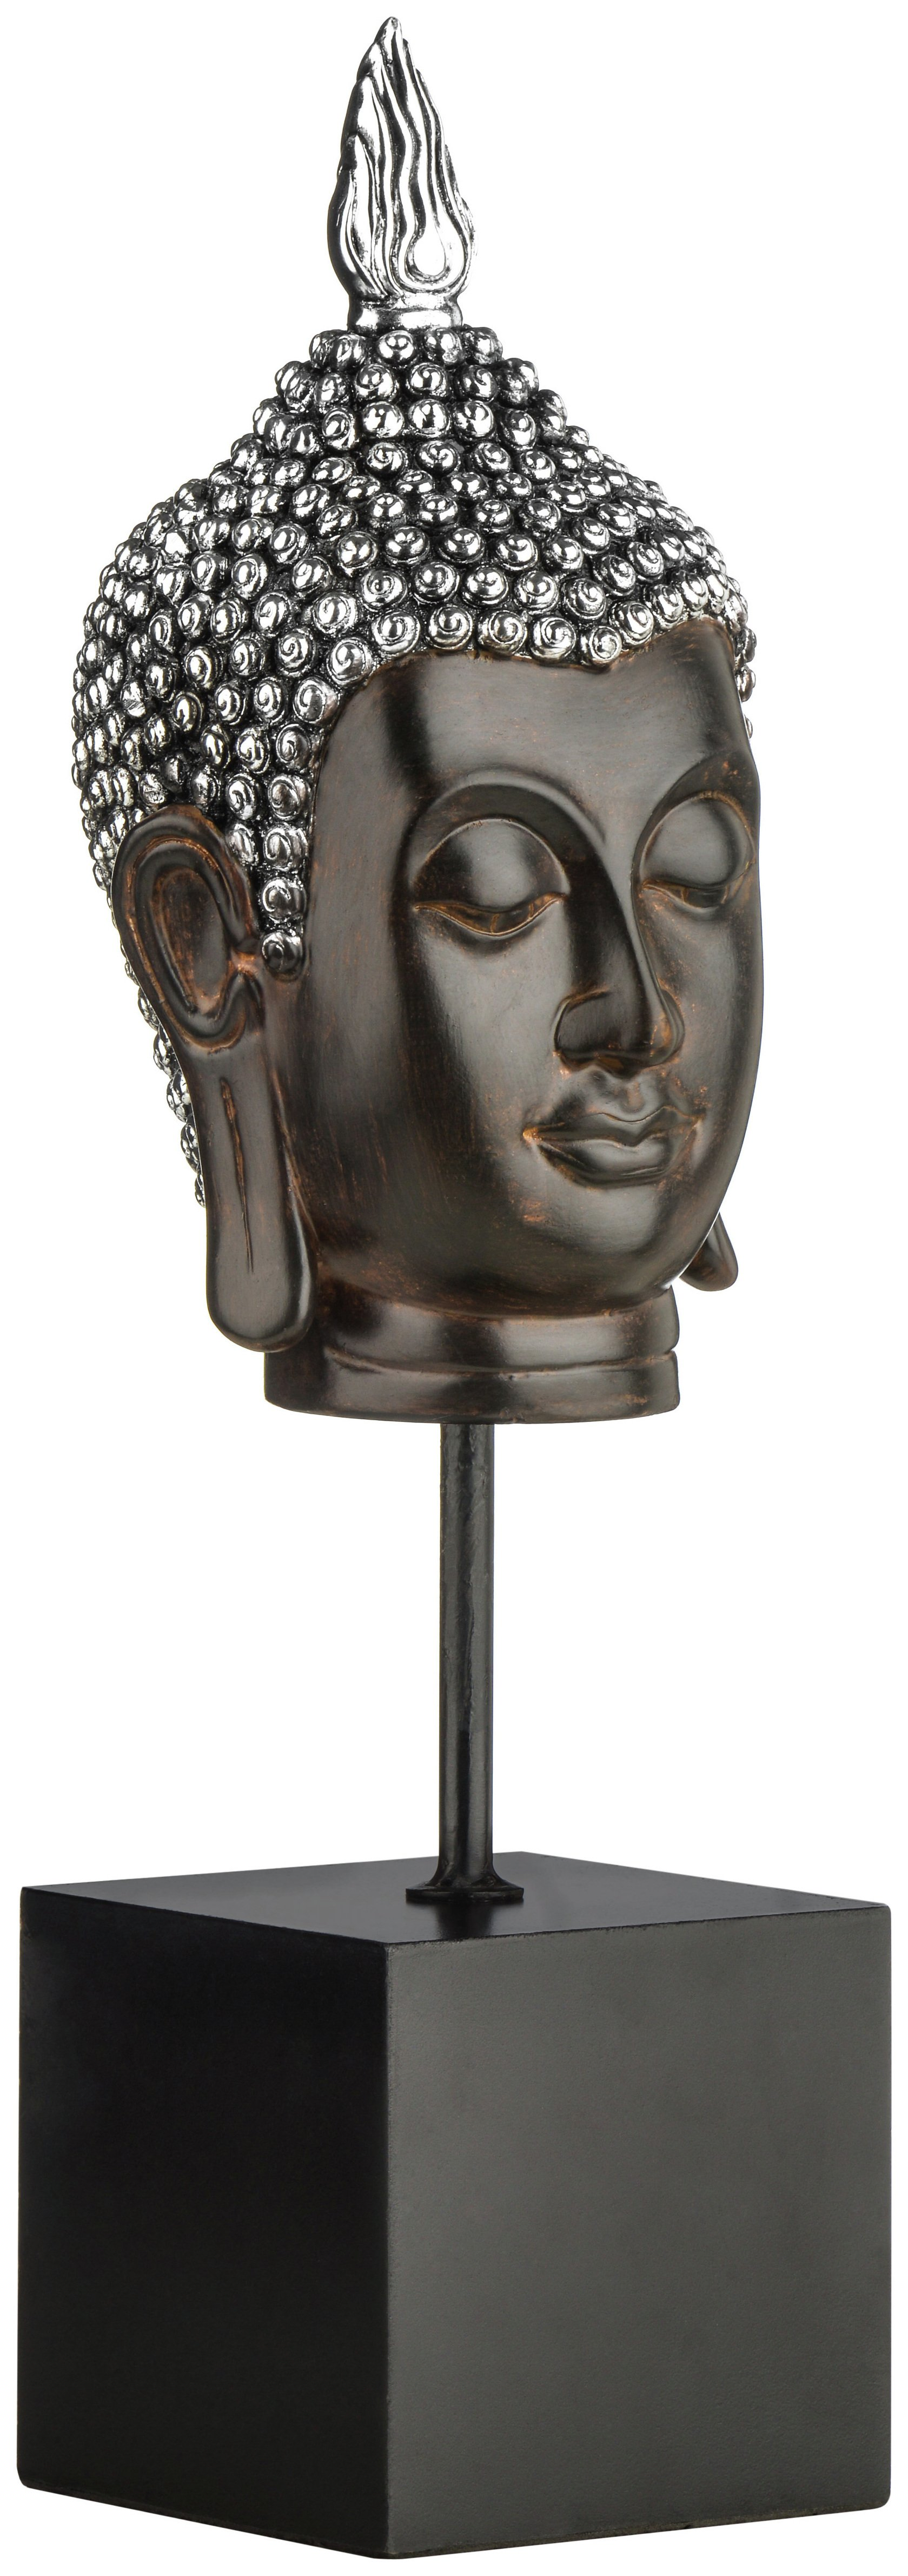 Premier - Housewares Silver - and Brown Buddha Head on Stand lowest price